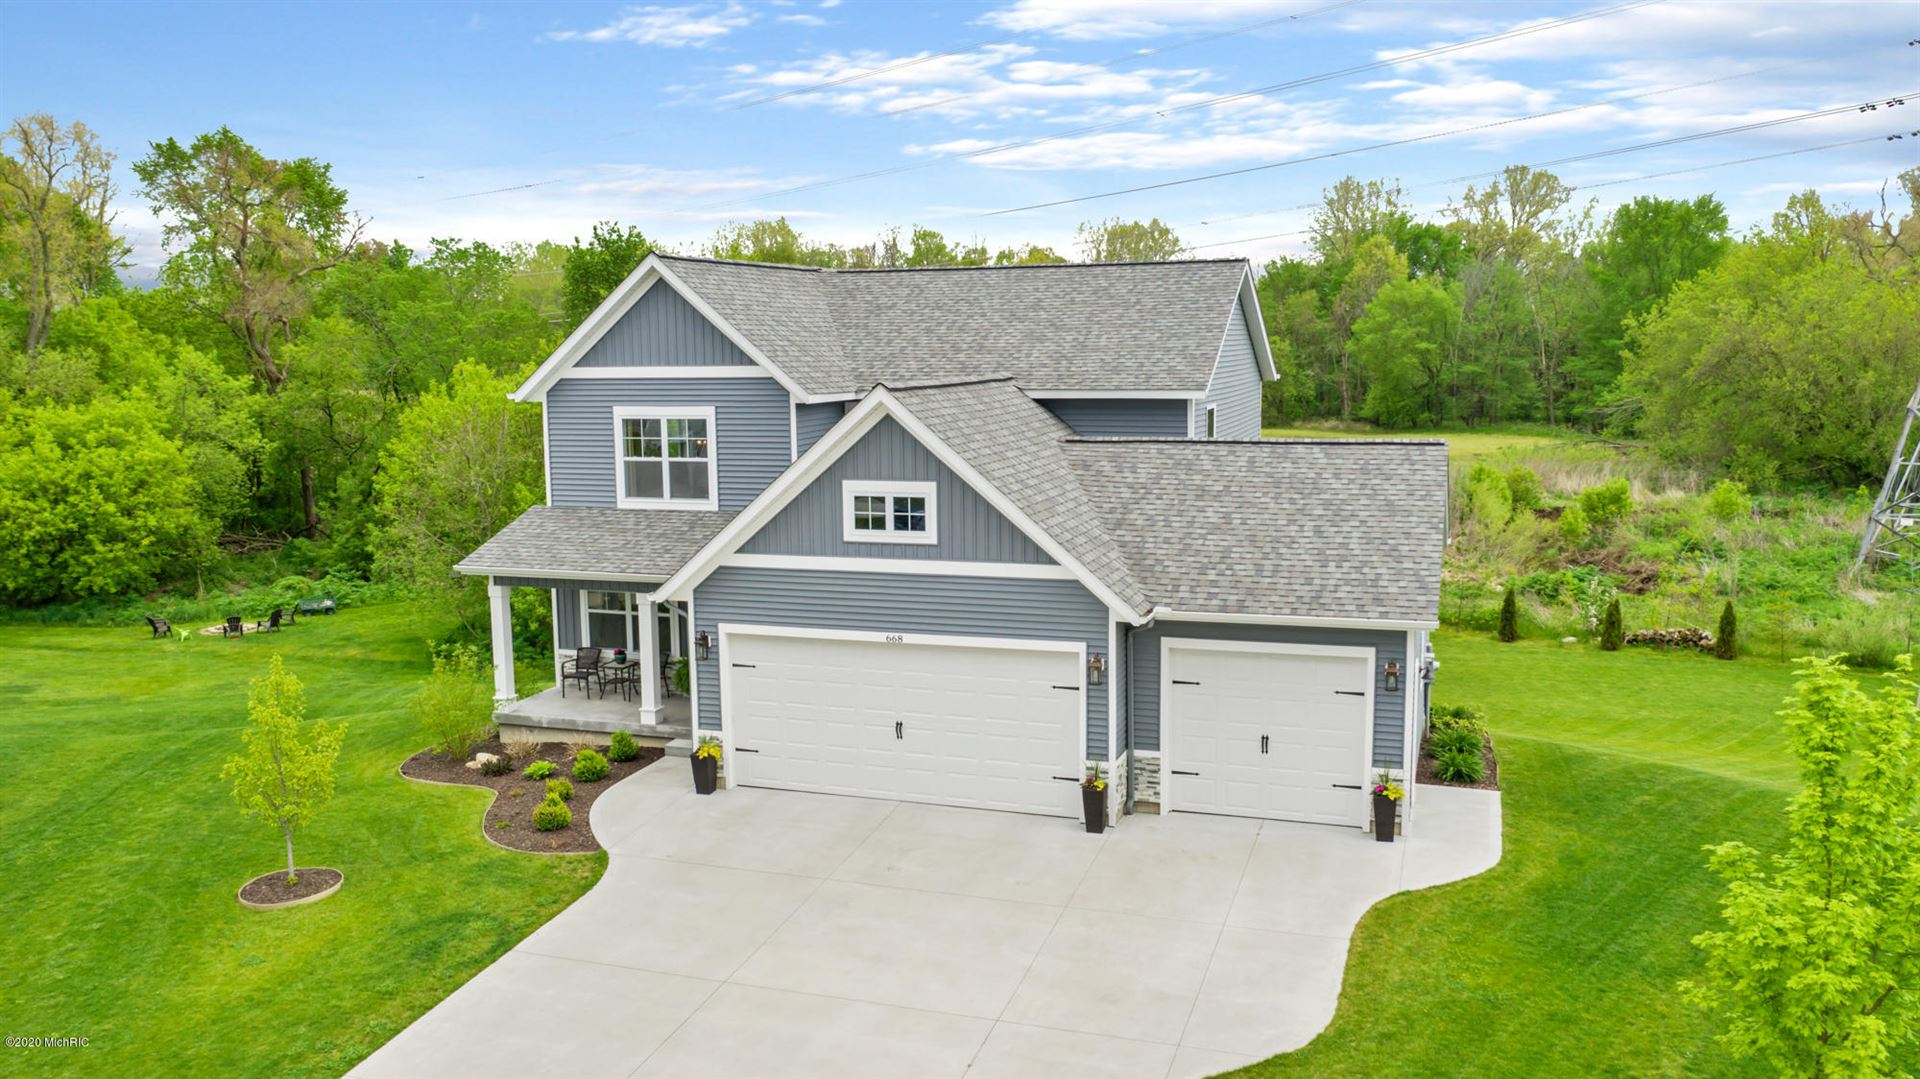 668 78th Avenue, Zeeland, MI 49464 - #: 20018926